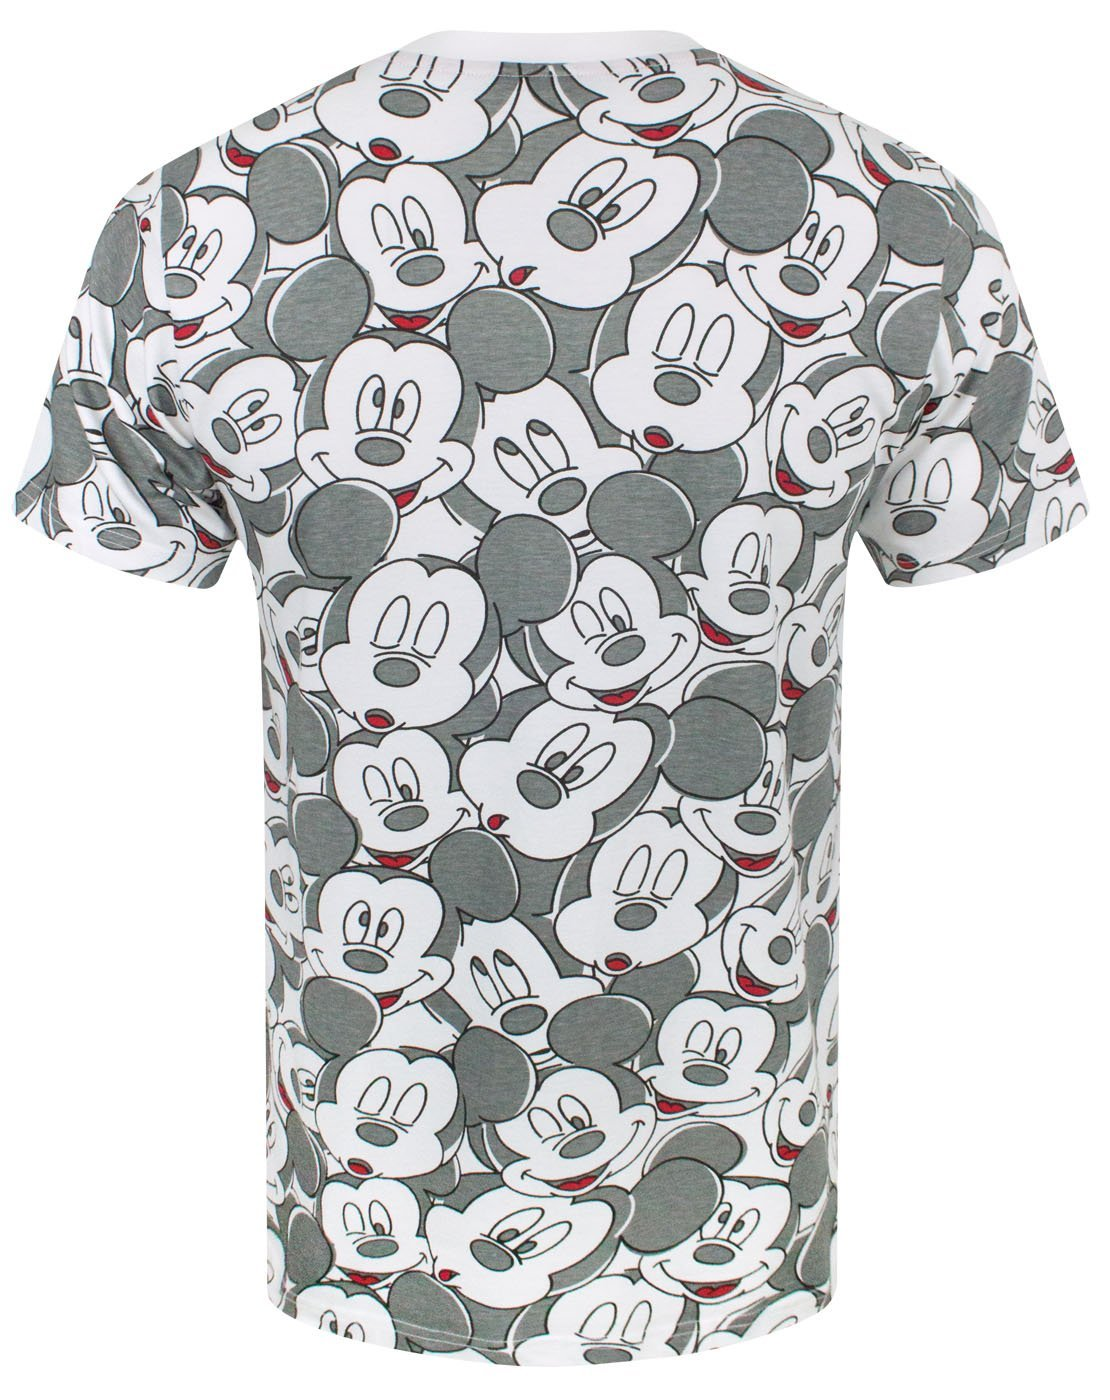 559995b13ac Disney Mickey Mouse Face All Over Print Men s T-Shirt – Vanilla ...